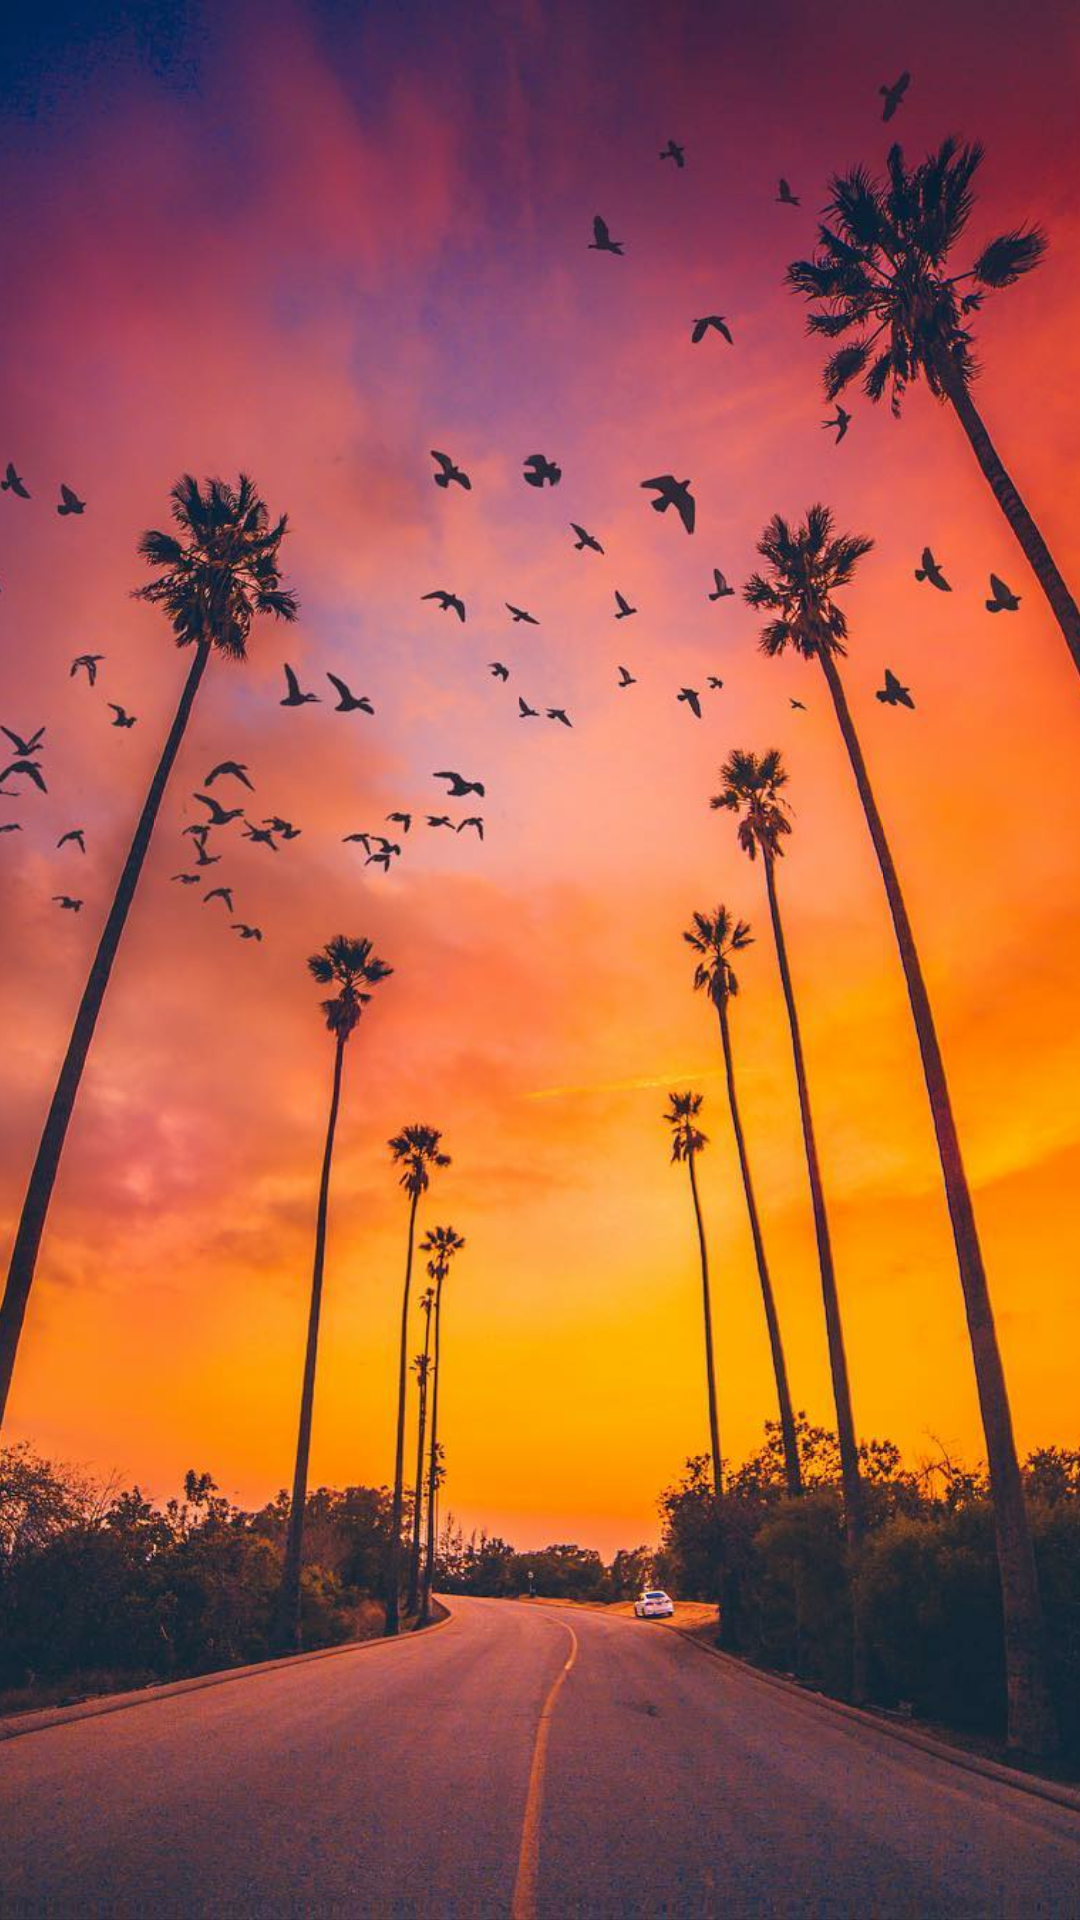 Palm Trees Sunset Nature Iphone Wallpaper In 2019 Nature